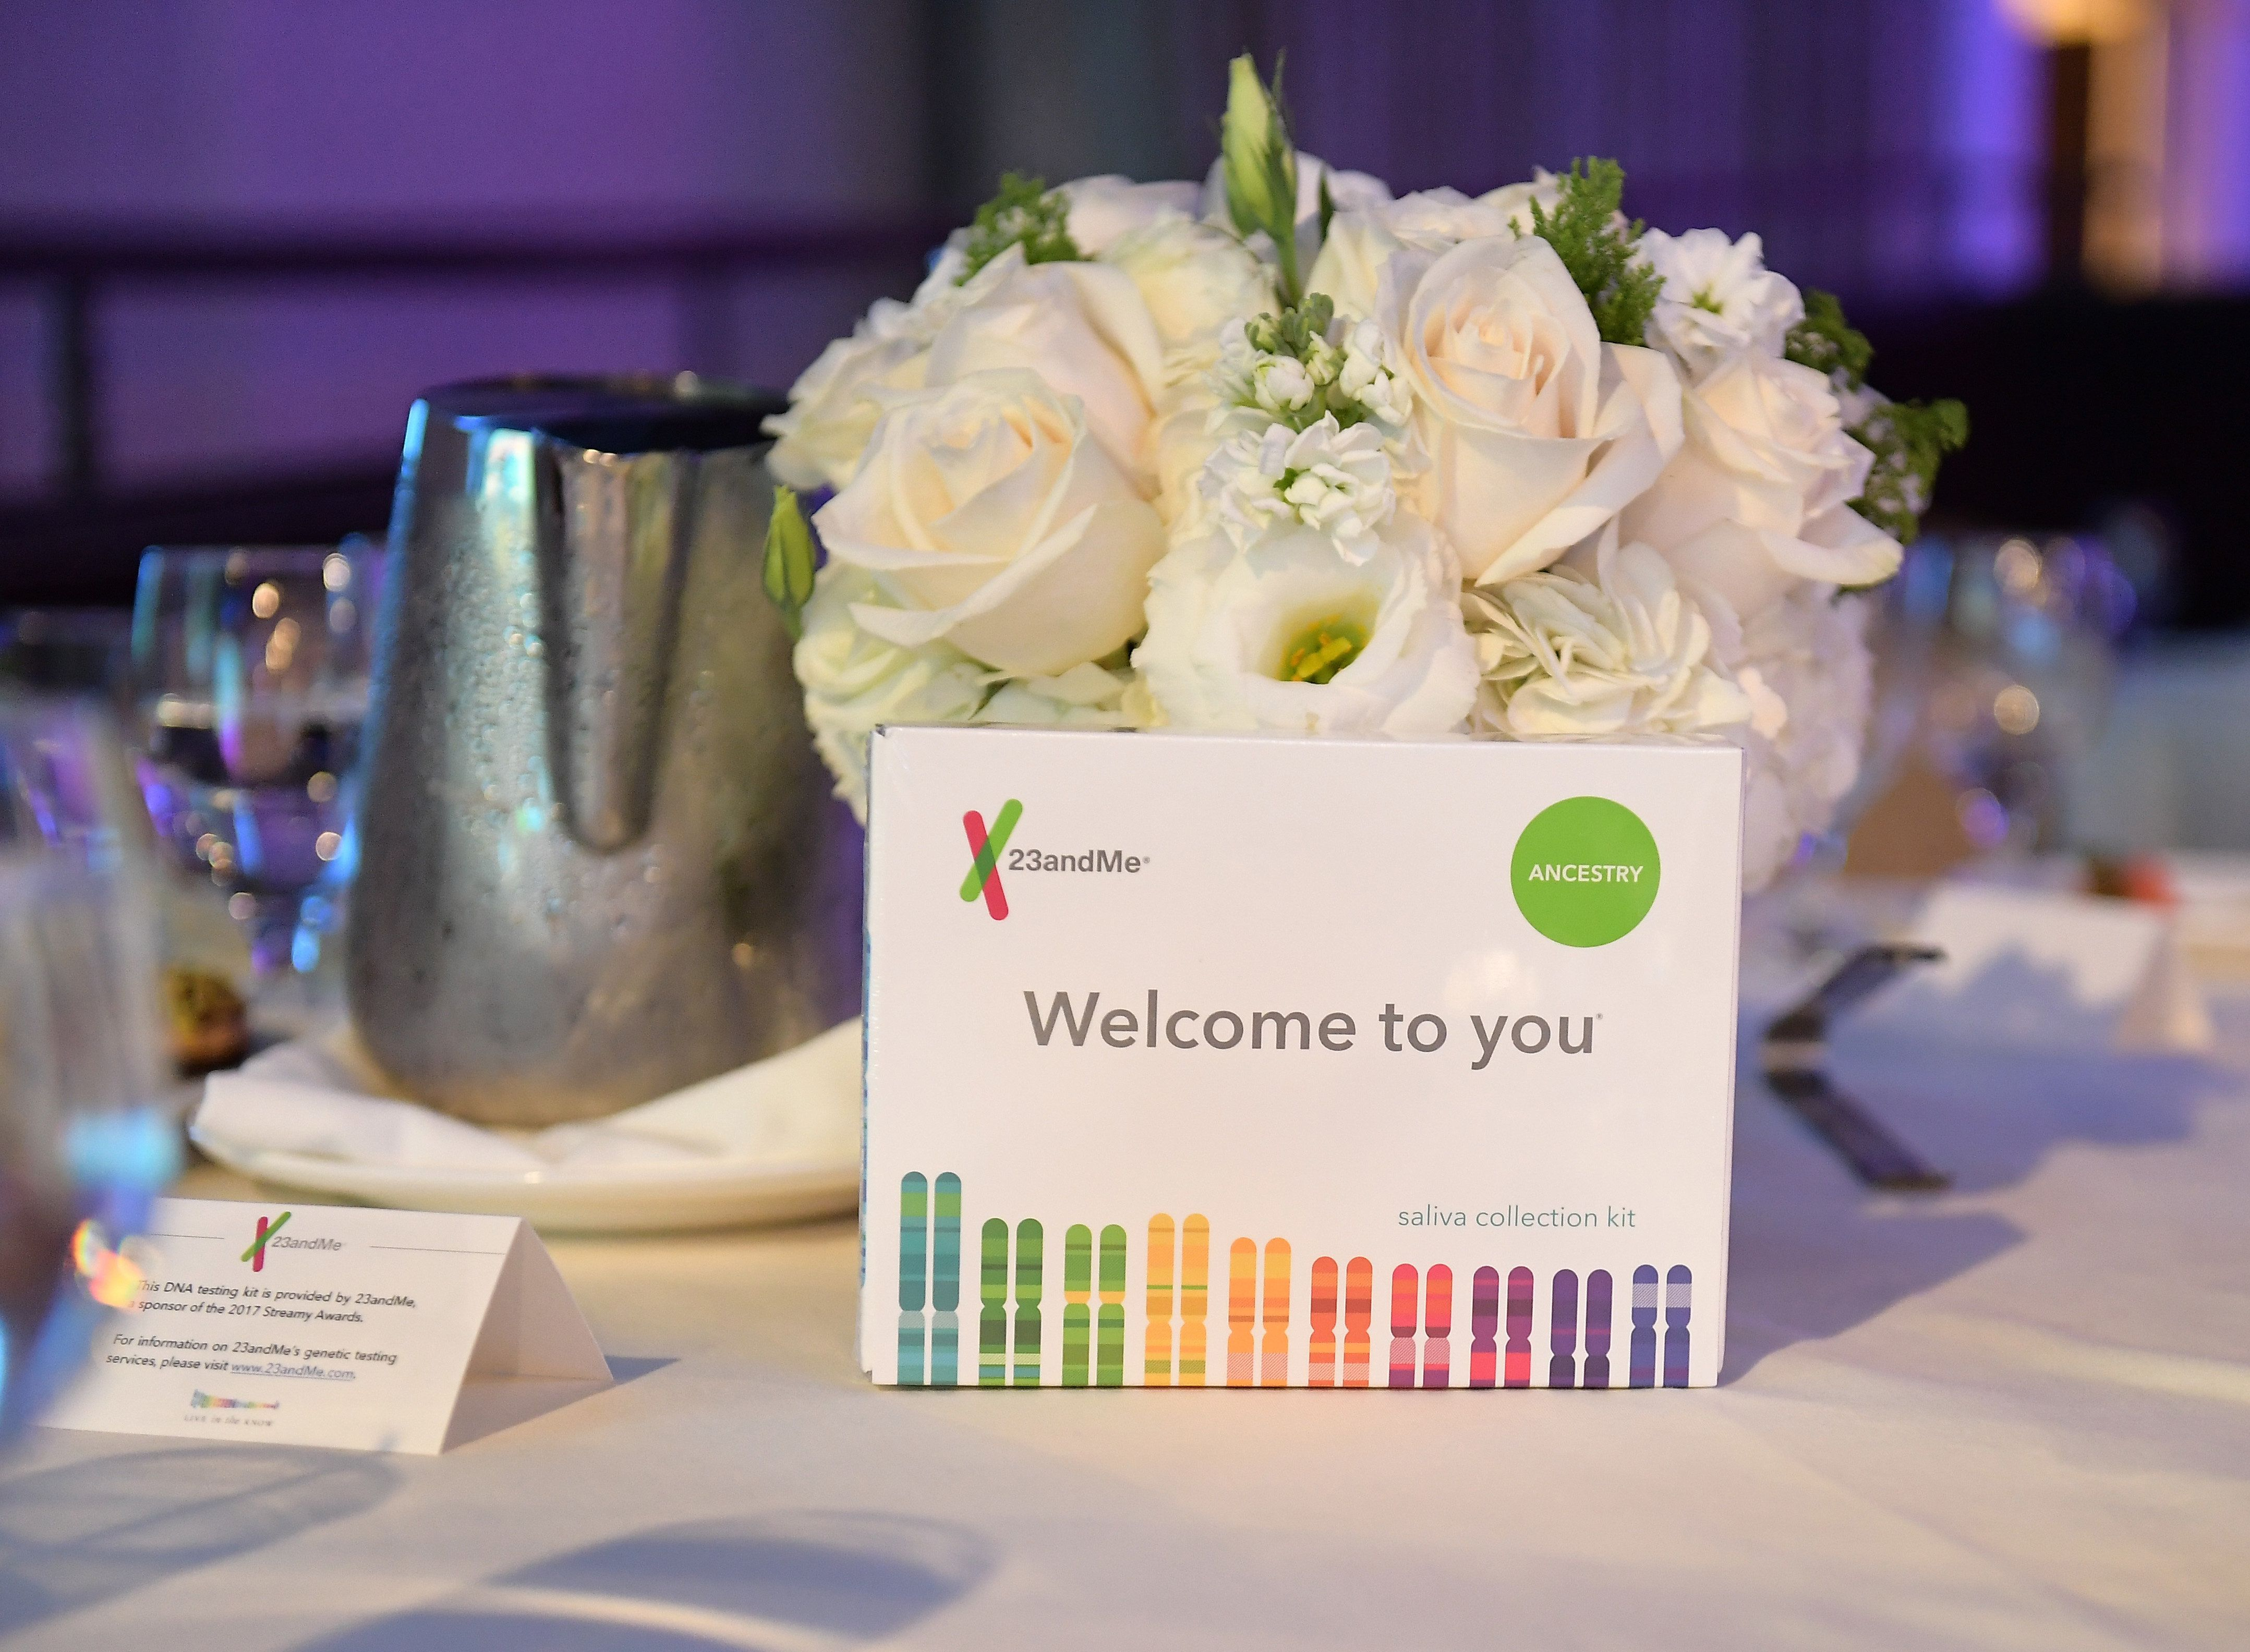 DNA Testing Company Teams With Pharmaceutical Giant